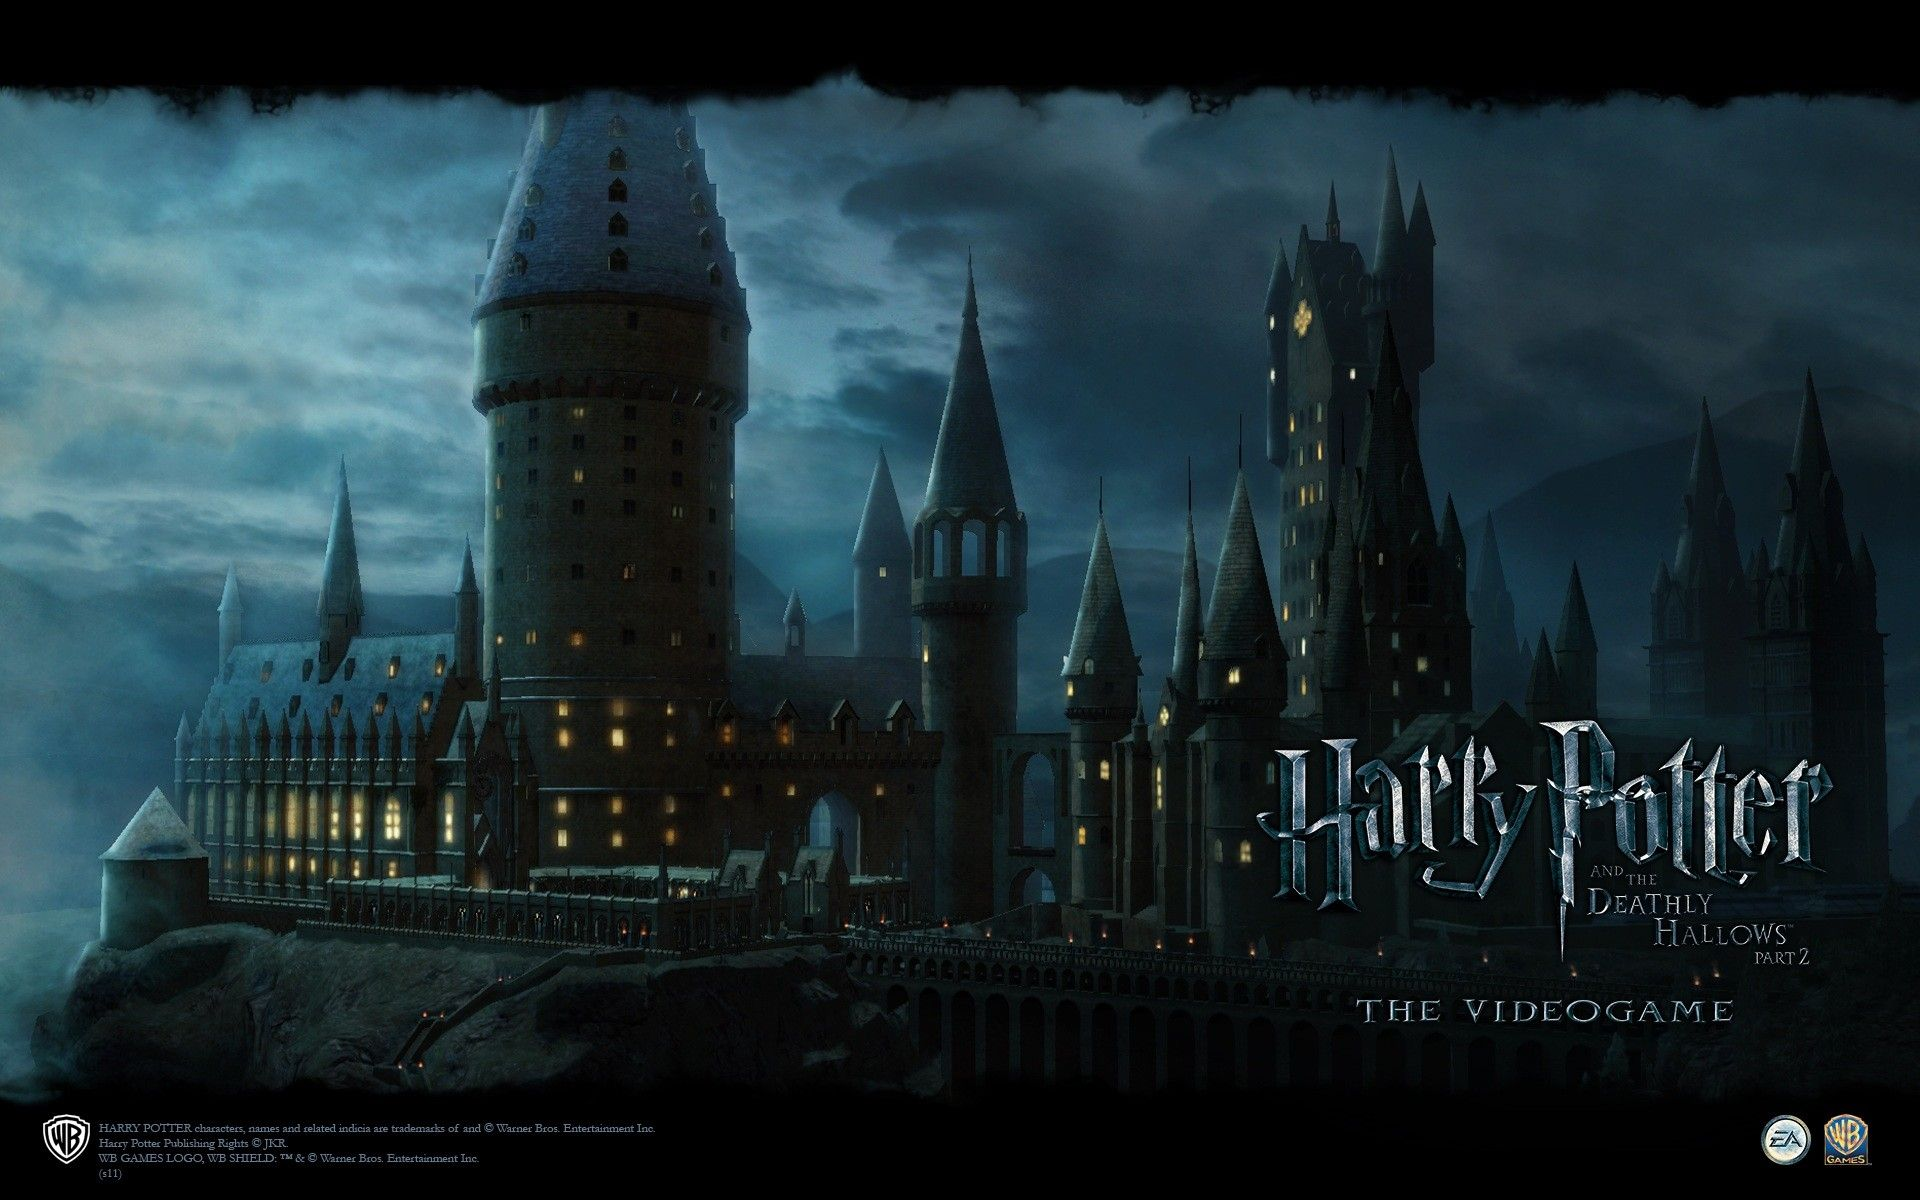 1920x1200 Desktop Backgrounds Hd The World S 1 Harry Potter Wallpaper Harry Potter Wallpaper Slytherin Wallpaper Hogwarts Castle